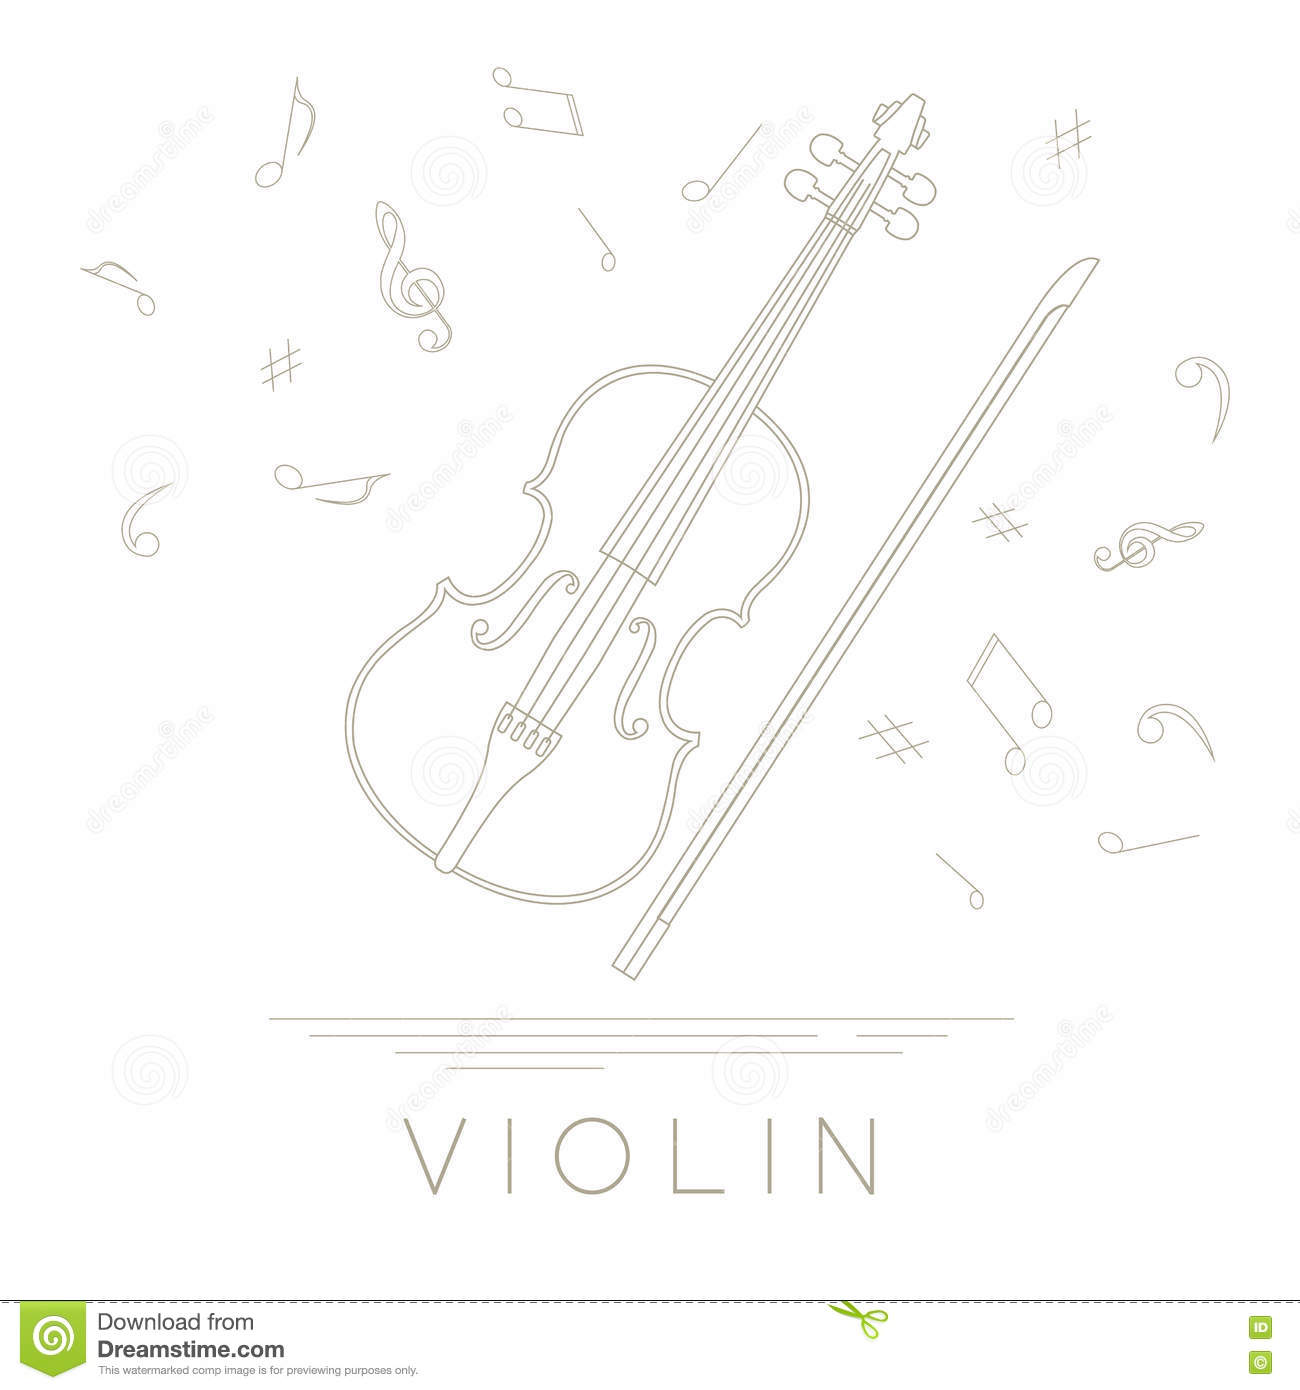 Violin Template   Musical Instruments Graphic Template Violin Stock Vector